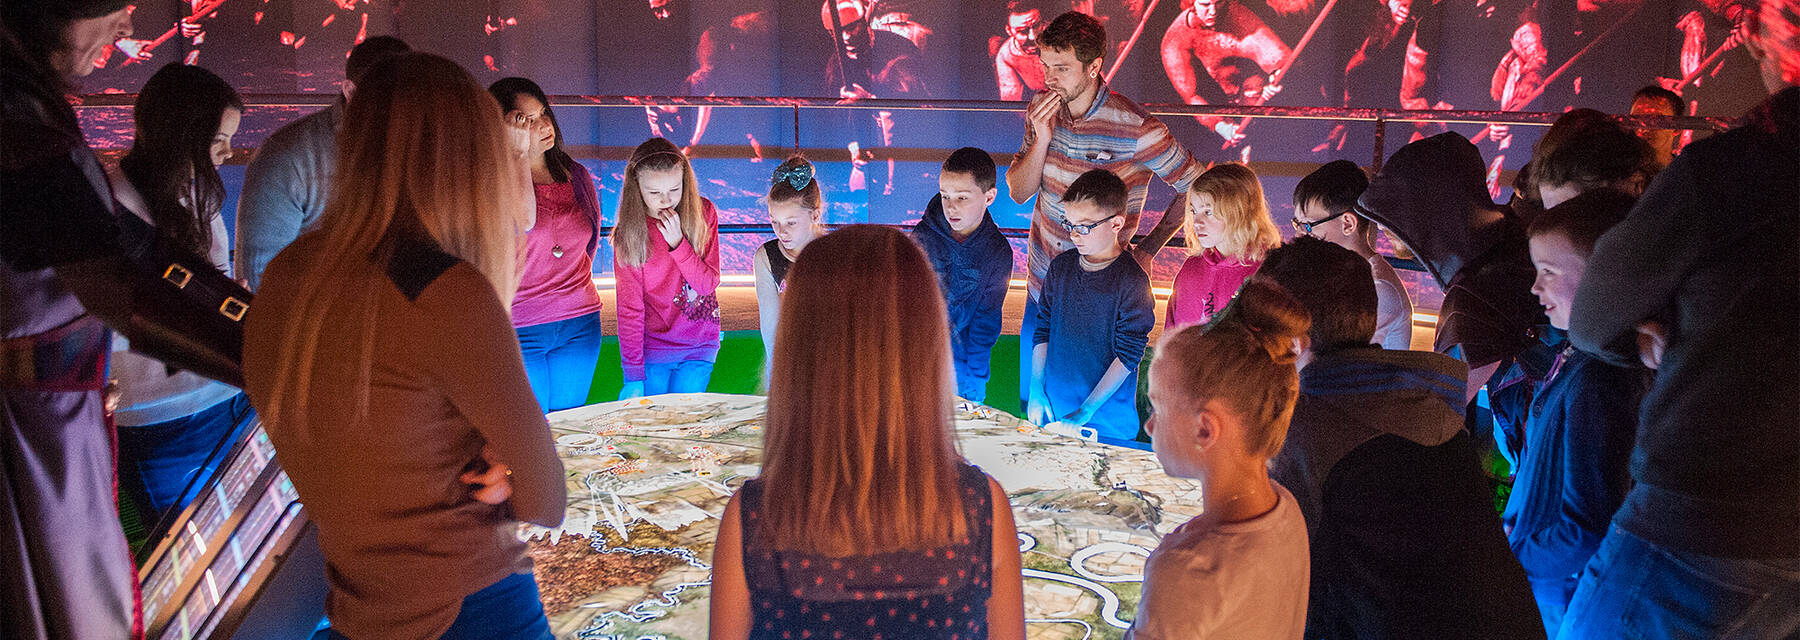 Visitors participating in the Bannockburn Battle Room game